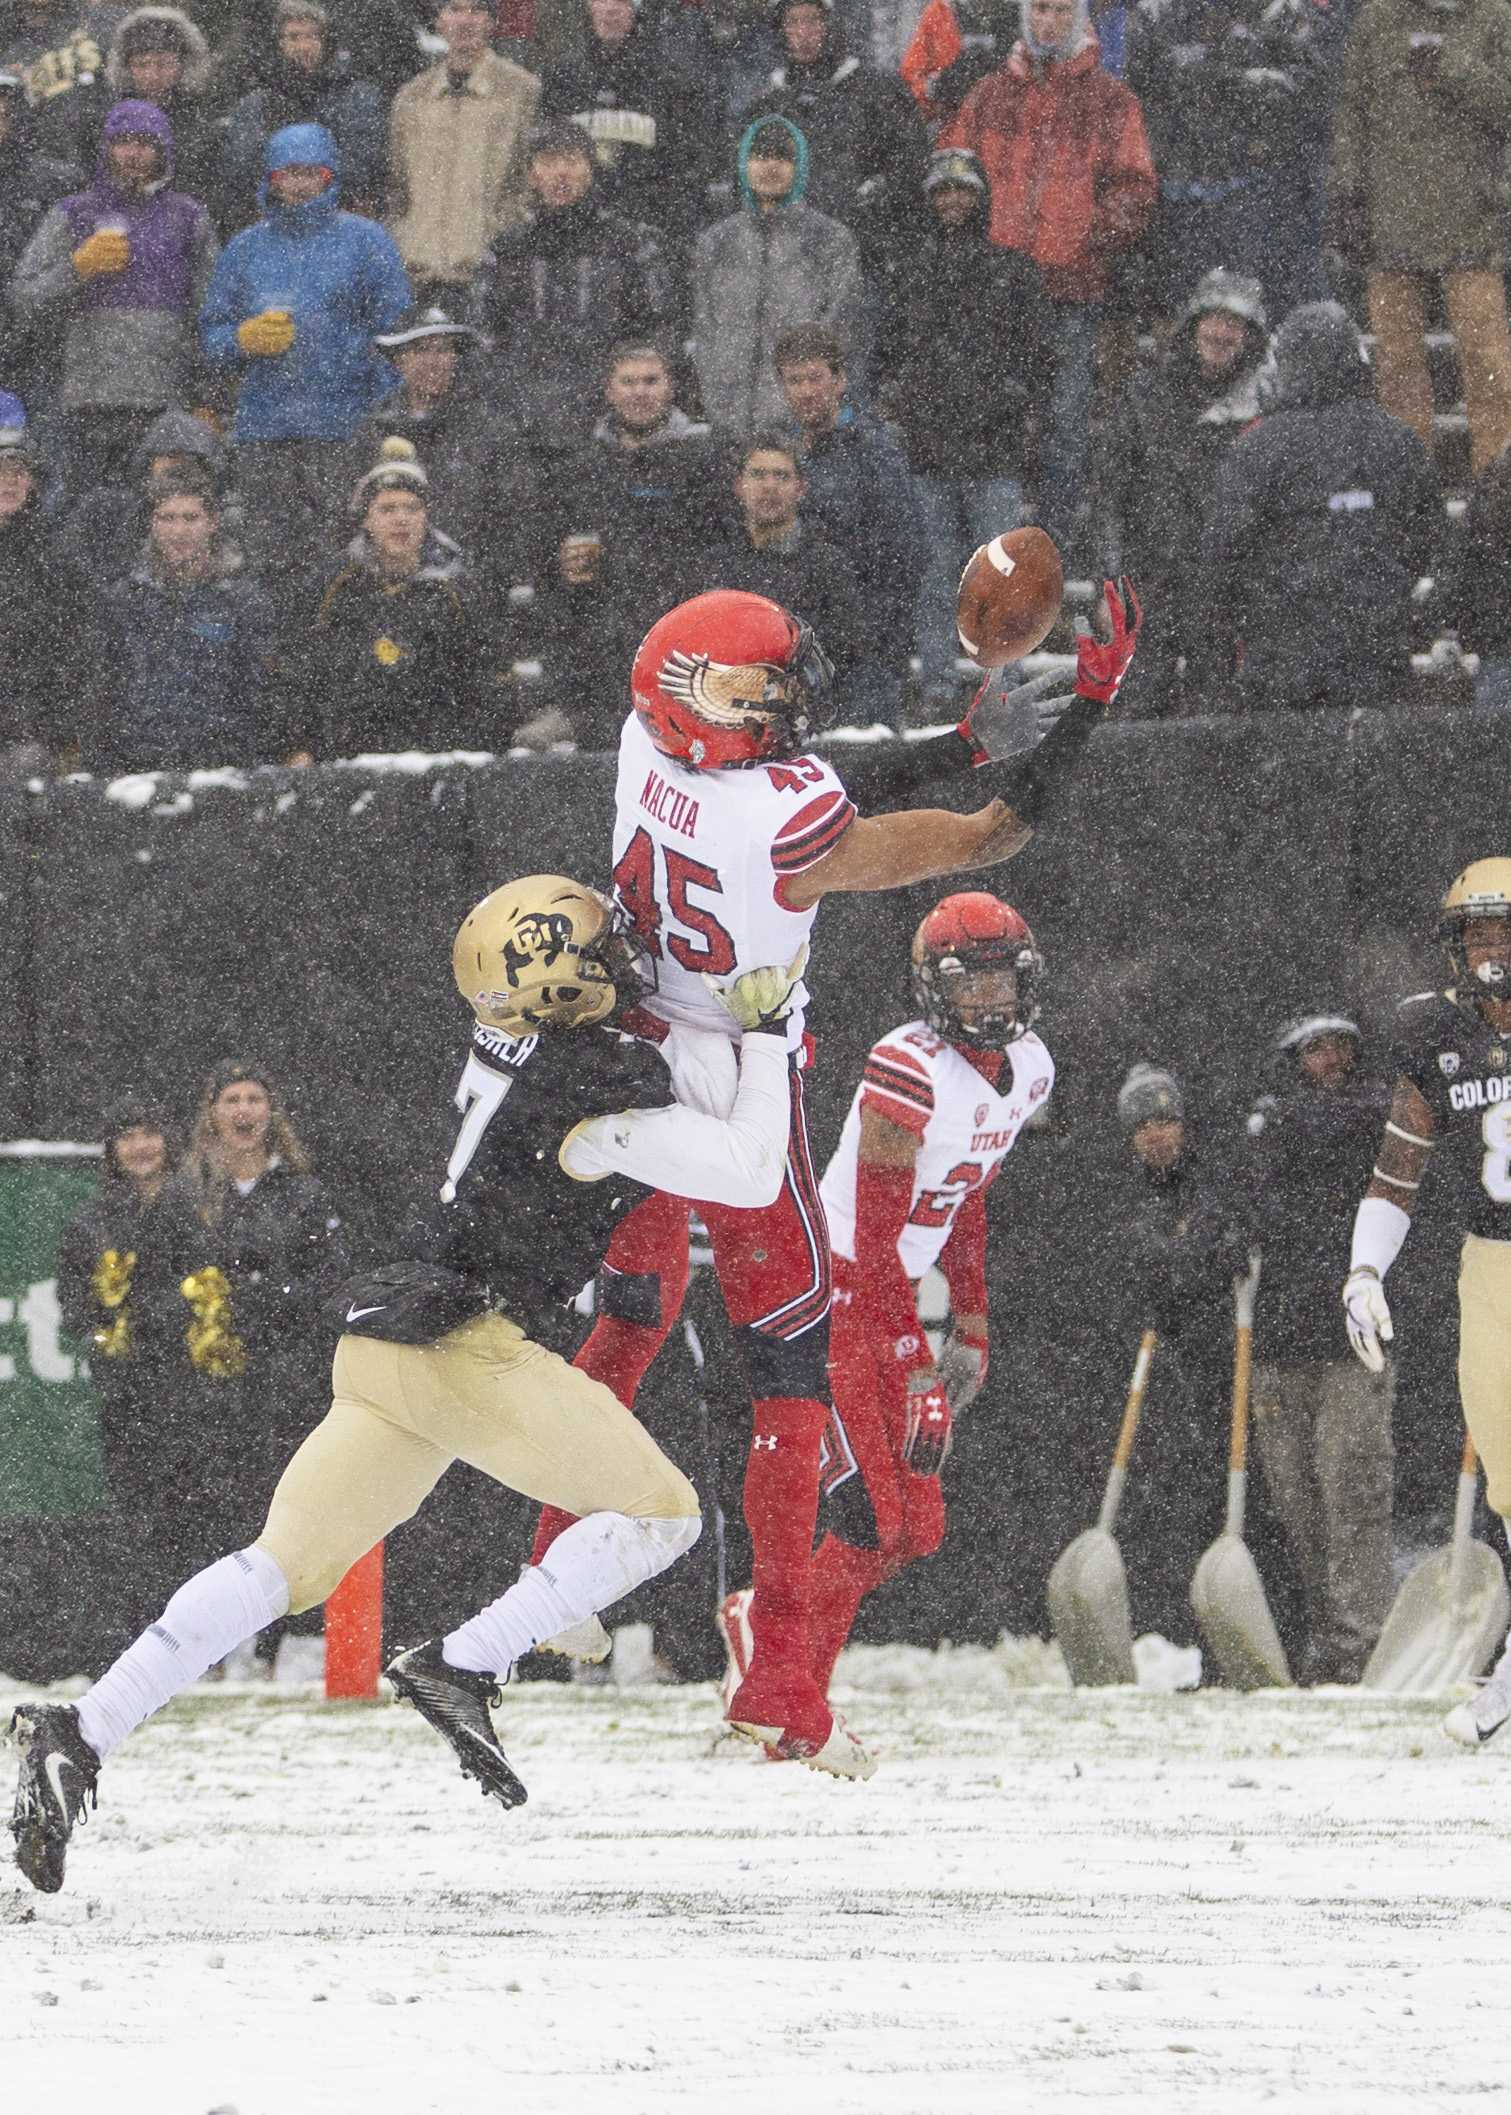 University of Utah sophomore wide receiver Samson Nacua (45) brings down a pass from QB Jason Shelley (15) to put six on the board for the Utes at Folsom Field in Boulder, CO Saturday, Nov. 17, 2018.   (Photo by: Justin Prather | The Utah Chronicle).